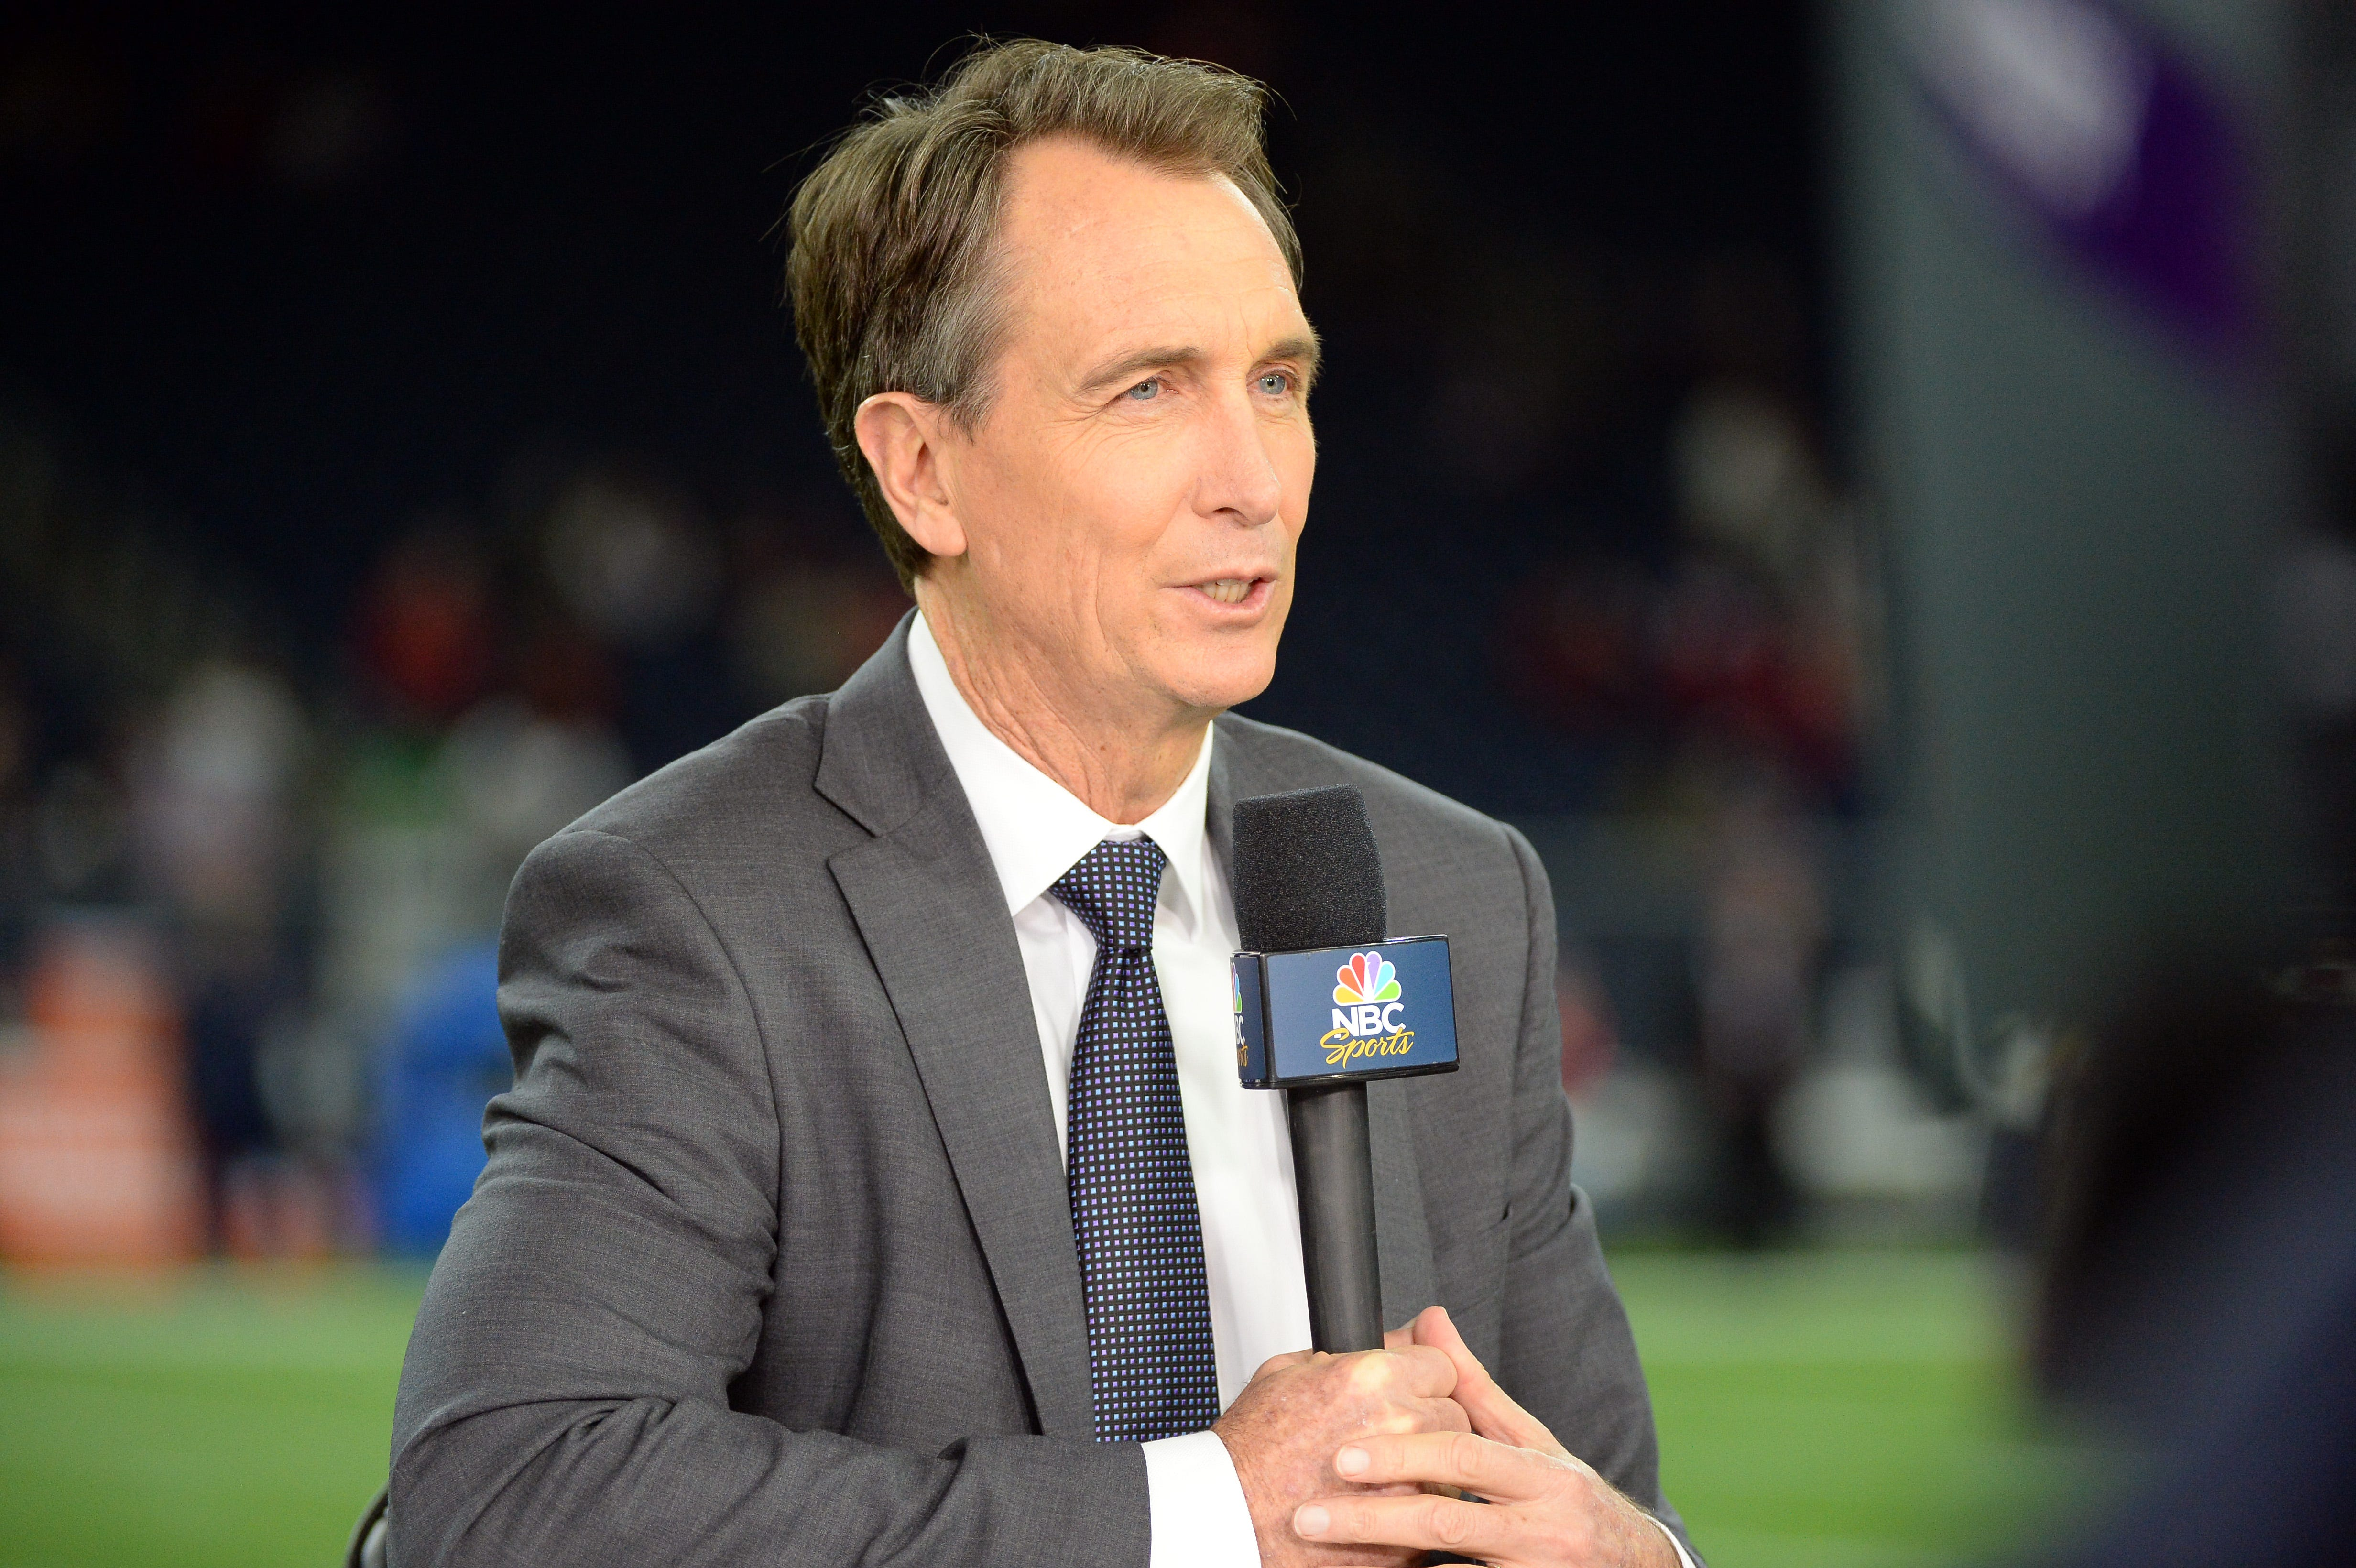 Cris Collinsworth apologizes for comment about being  blown away  by female fans  NFL knowledge